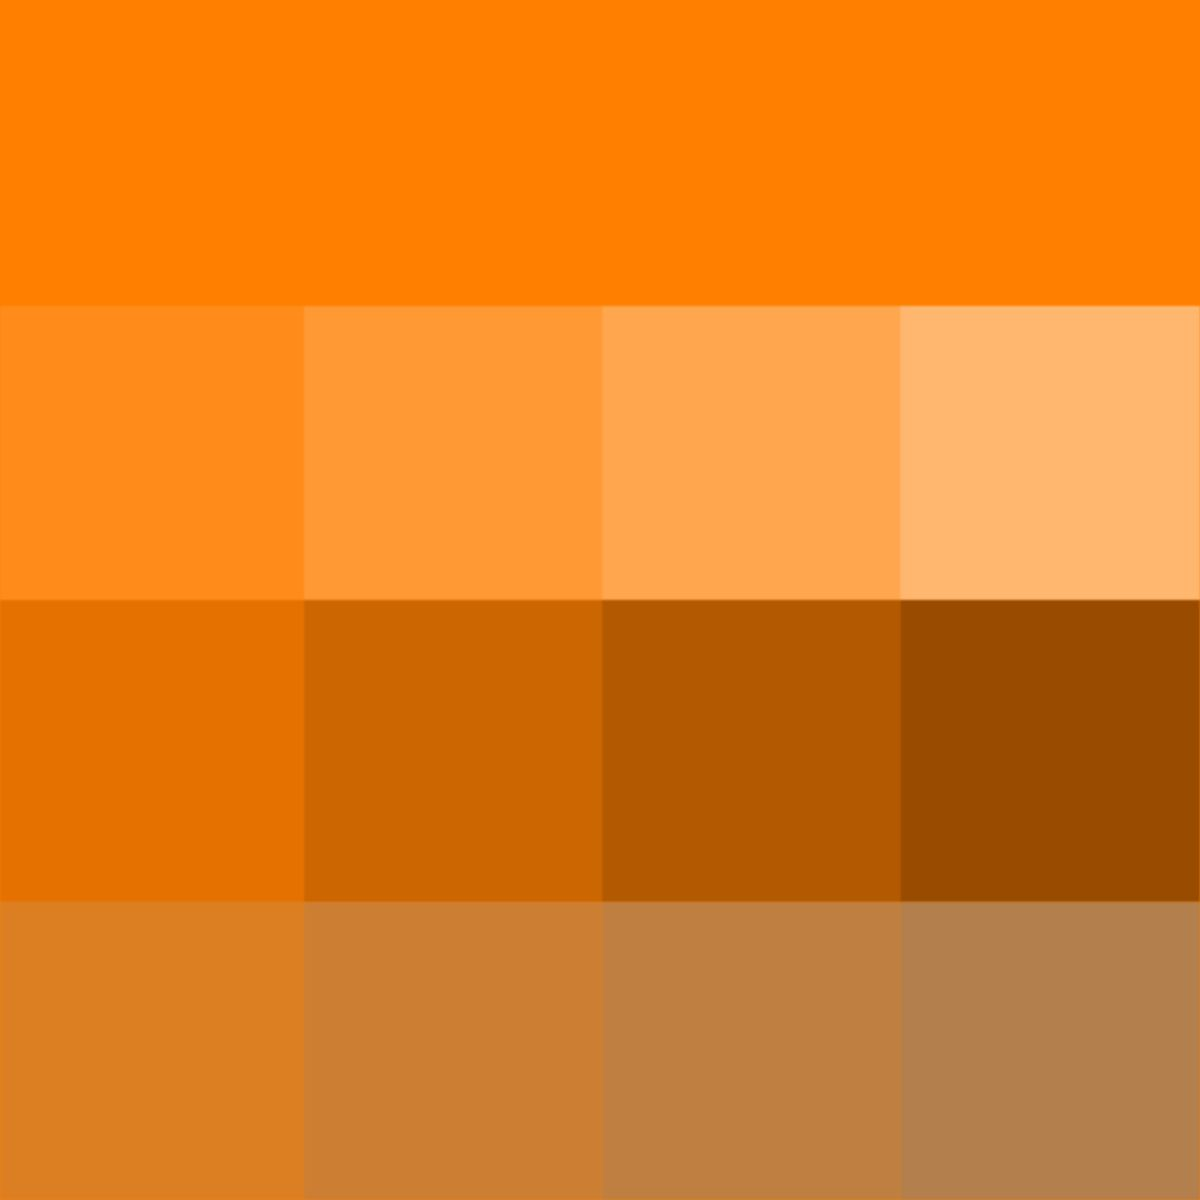 Orange Hue Tints Shades Tones Pure Color With White Black And Grey Which Desaturates The